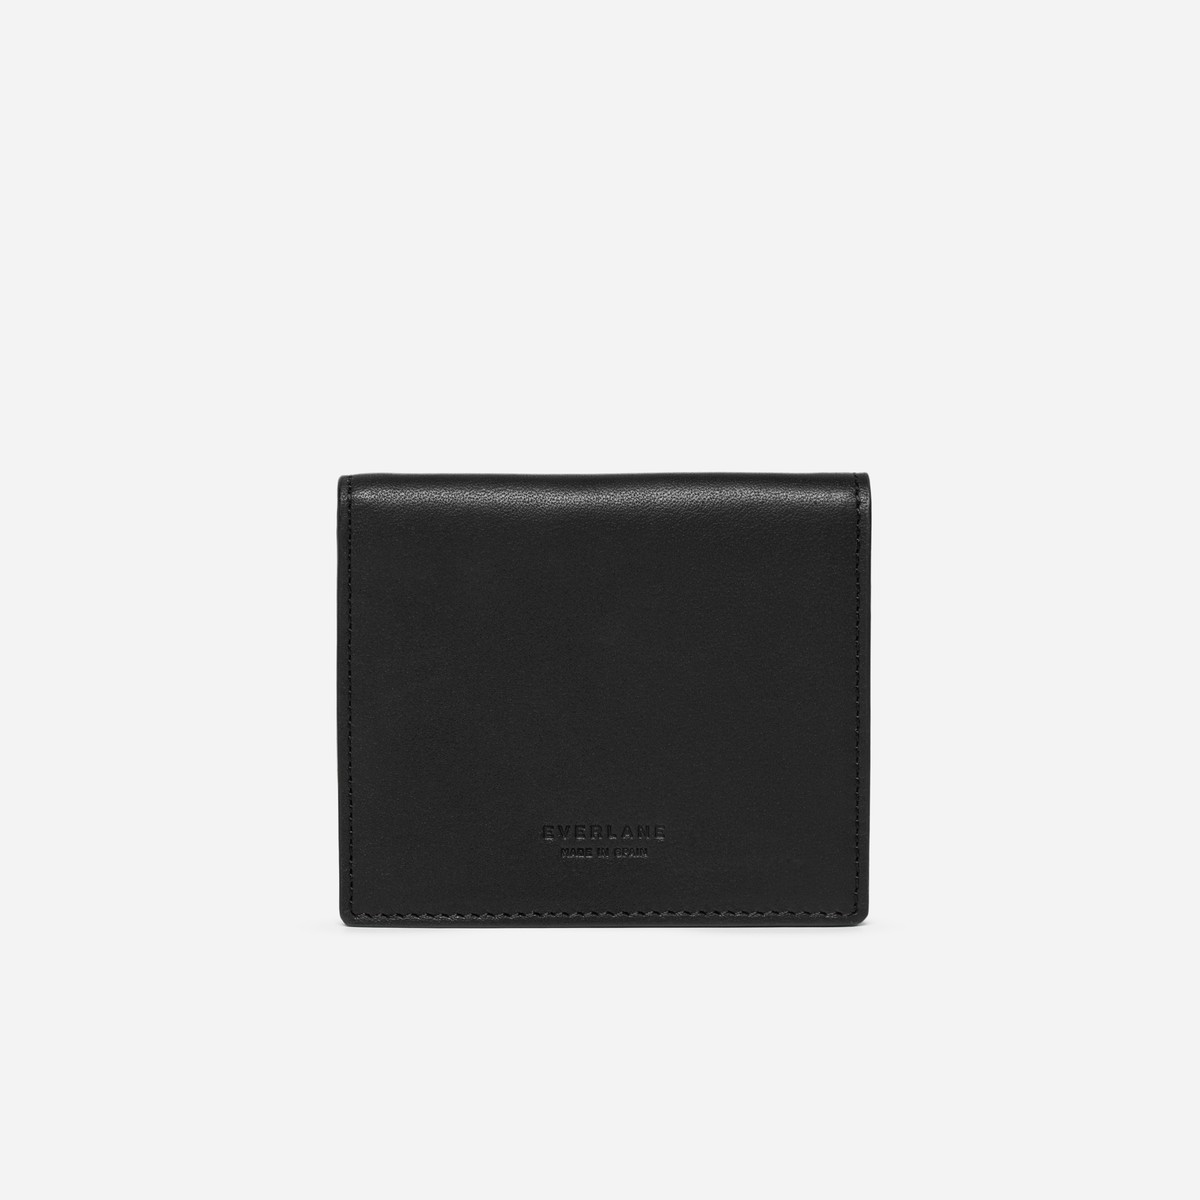 everlane-leather-bifold-wallet